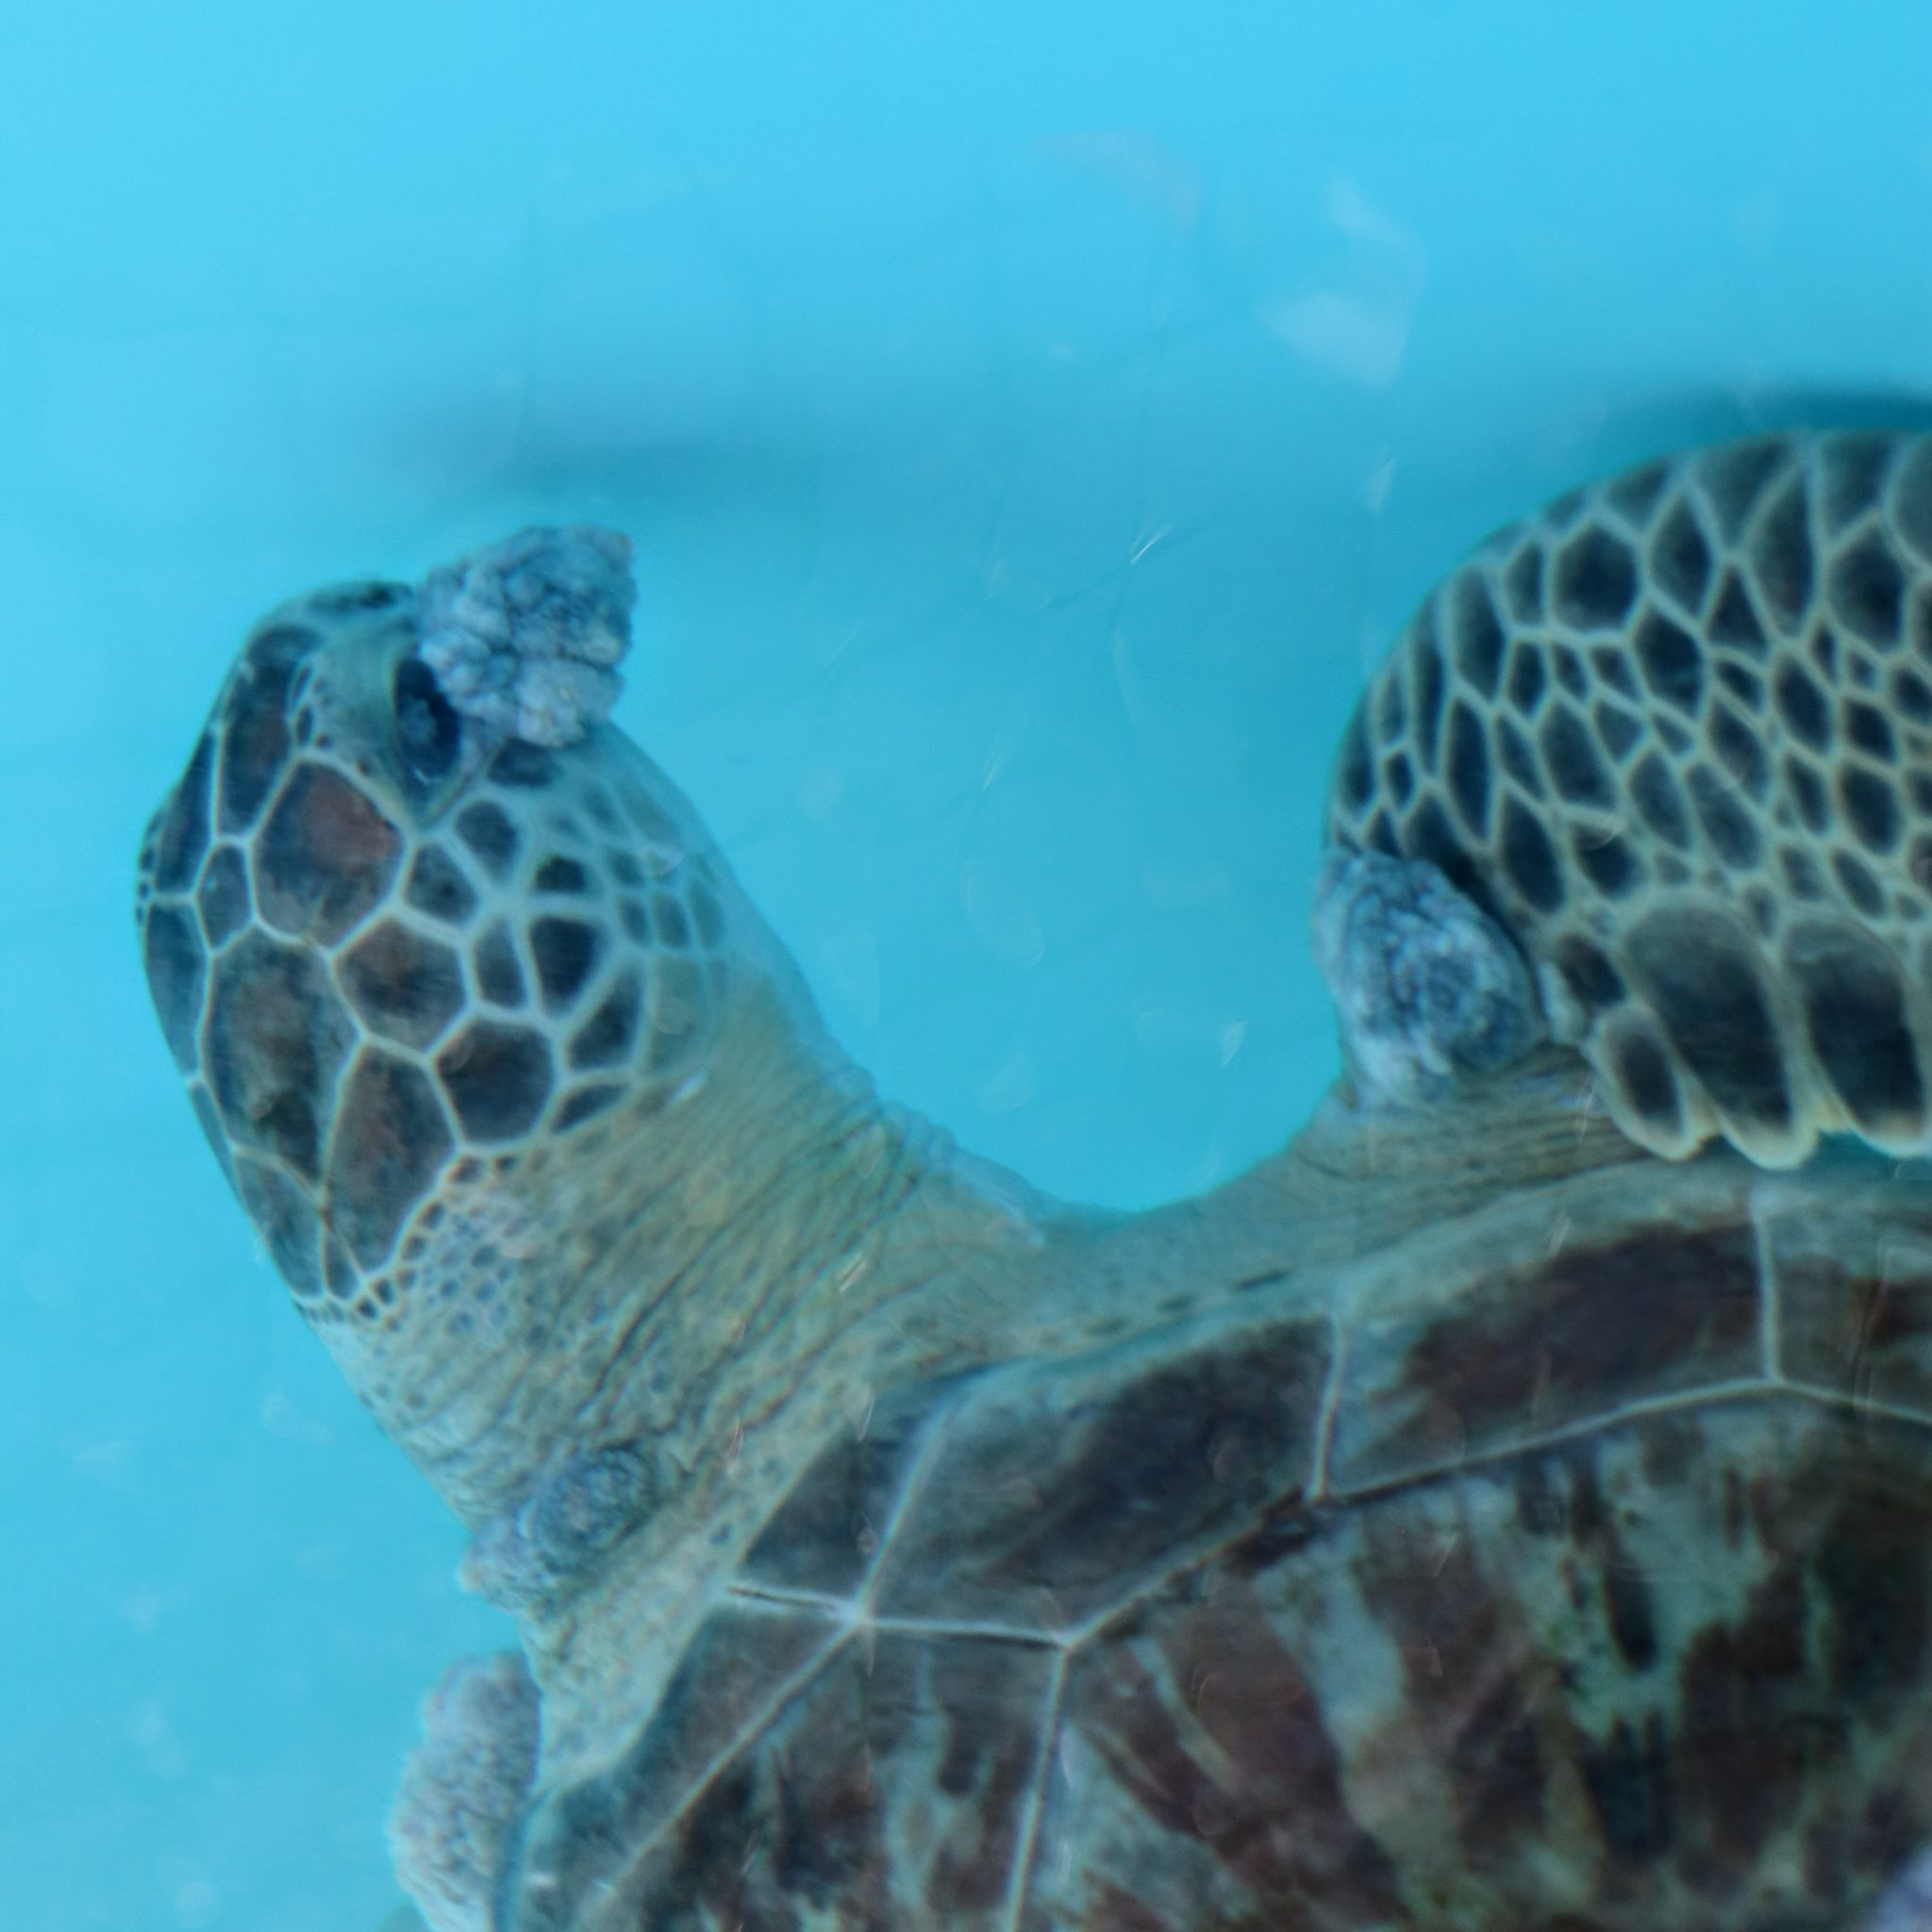 Closeup of Camo, a Green sea turtle swimming in treatment tank with large FP eye tumor.